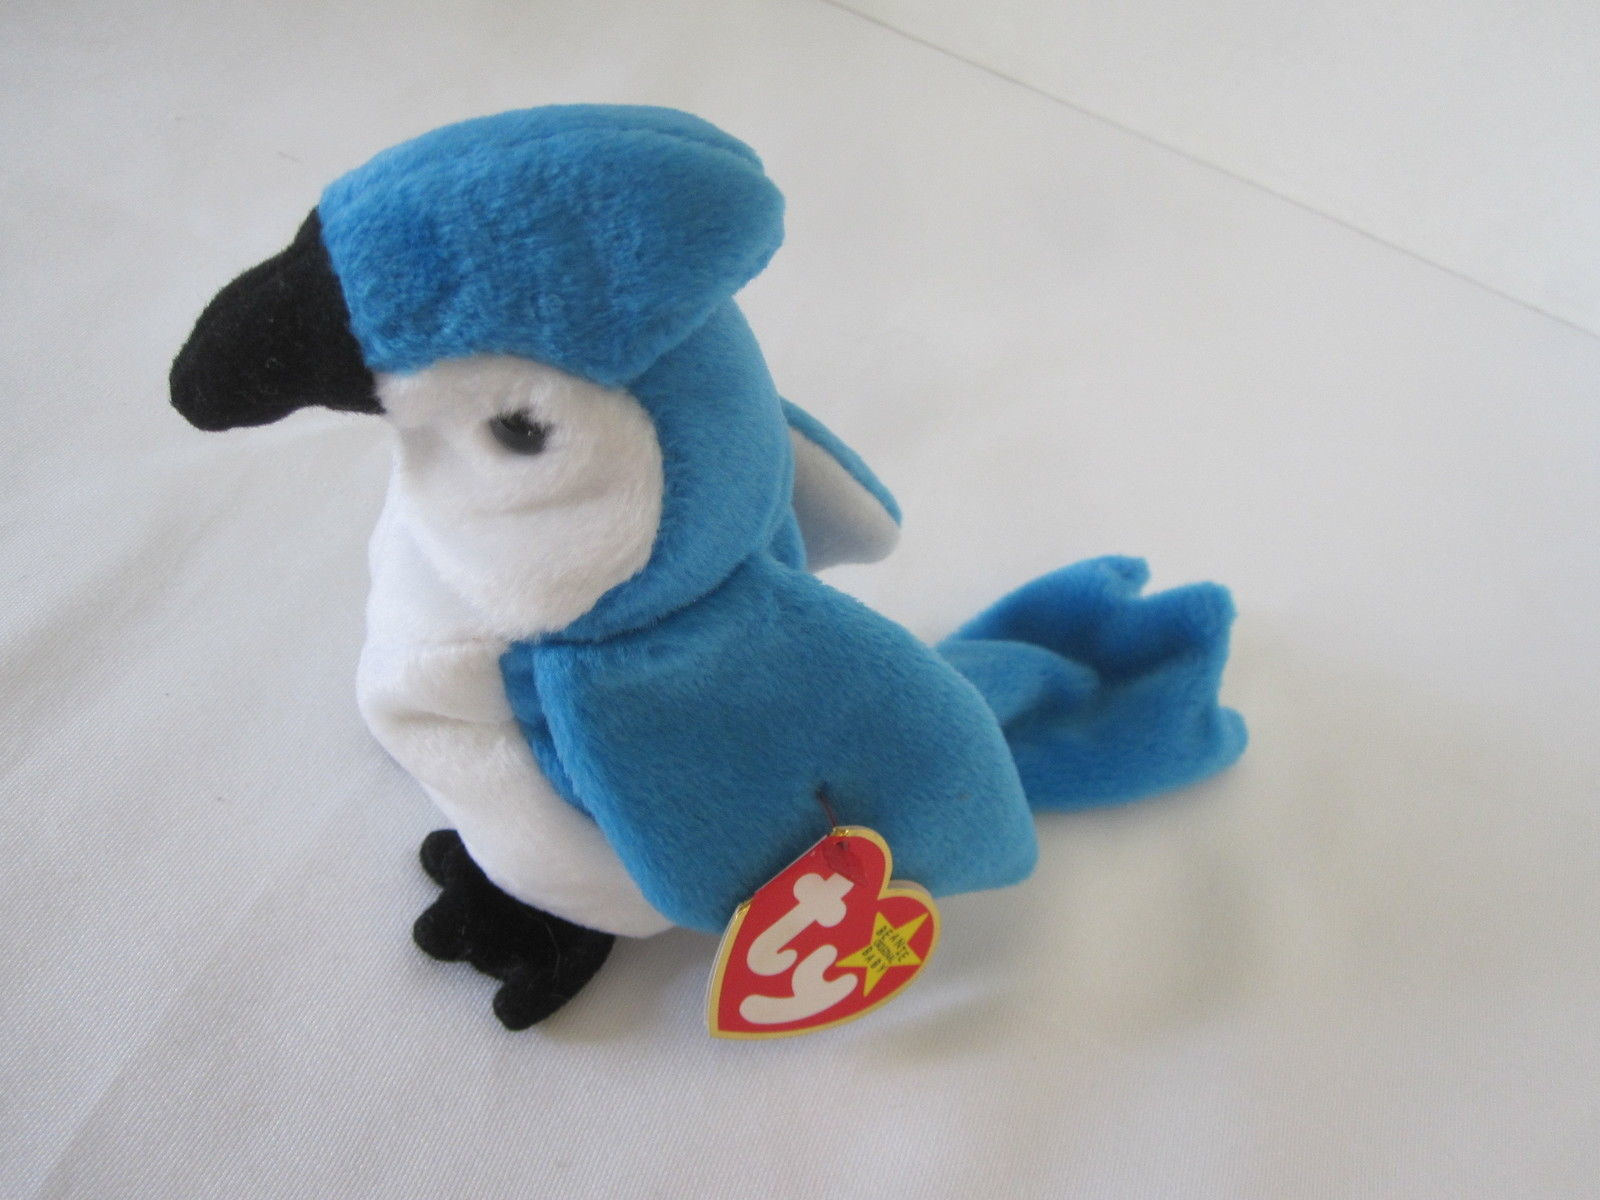 3641ae8a3d6 TY Beanie Baby Original Retired Rocket the and 24 similar items